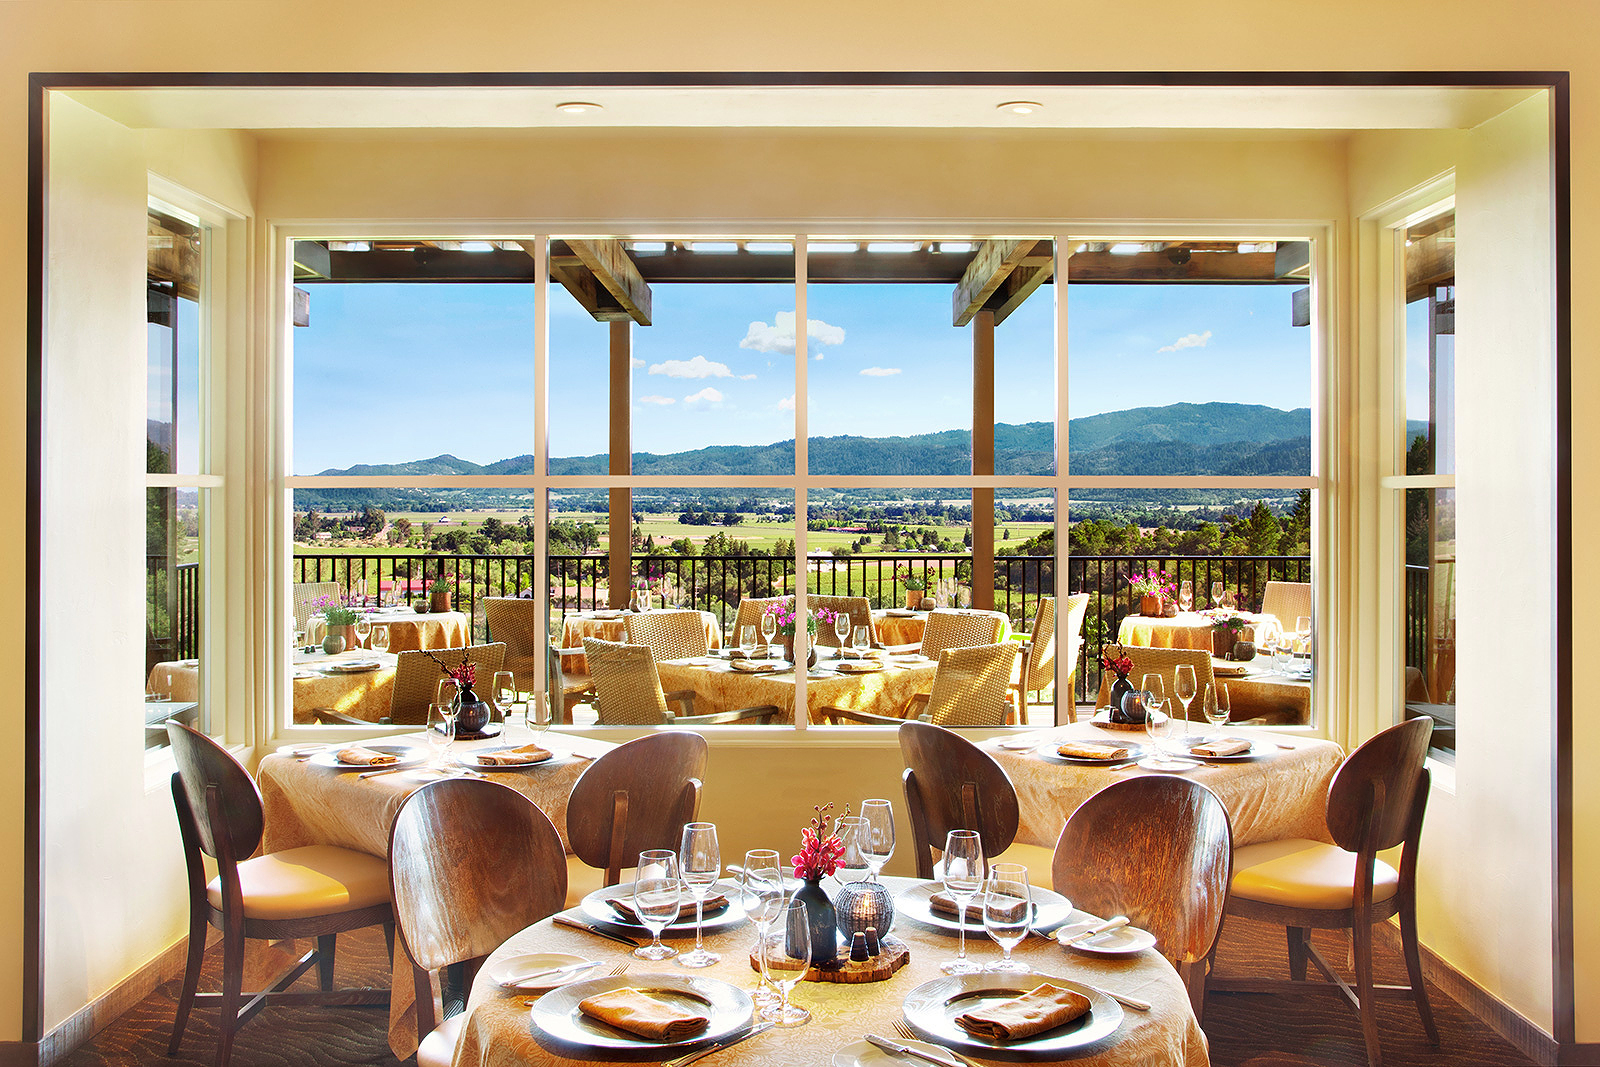 Sonoma Wine Country Resort  | Dovis Bird Agency Photography